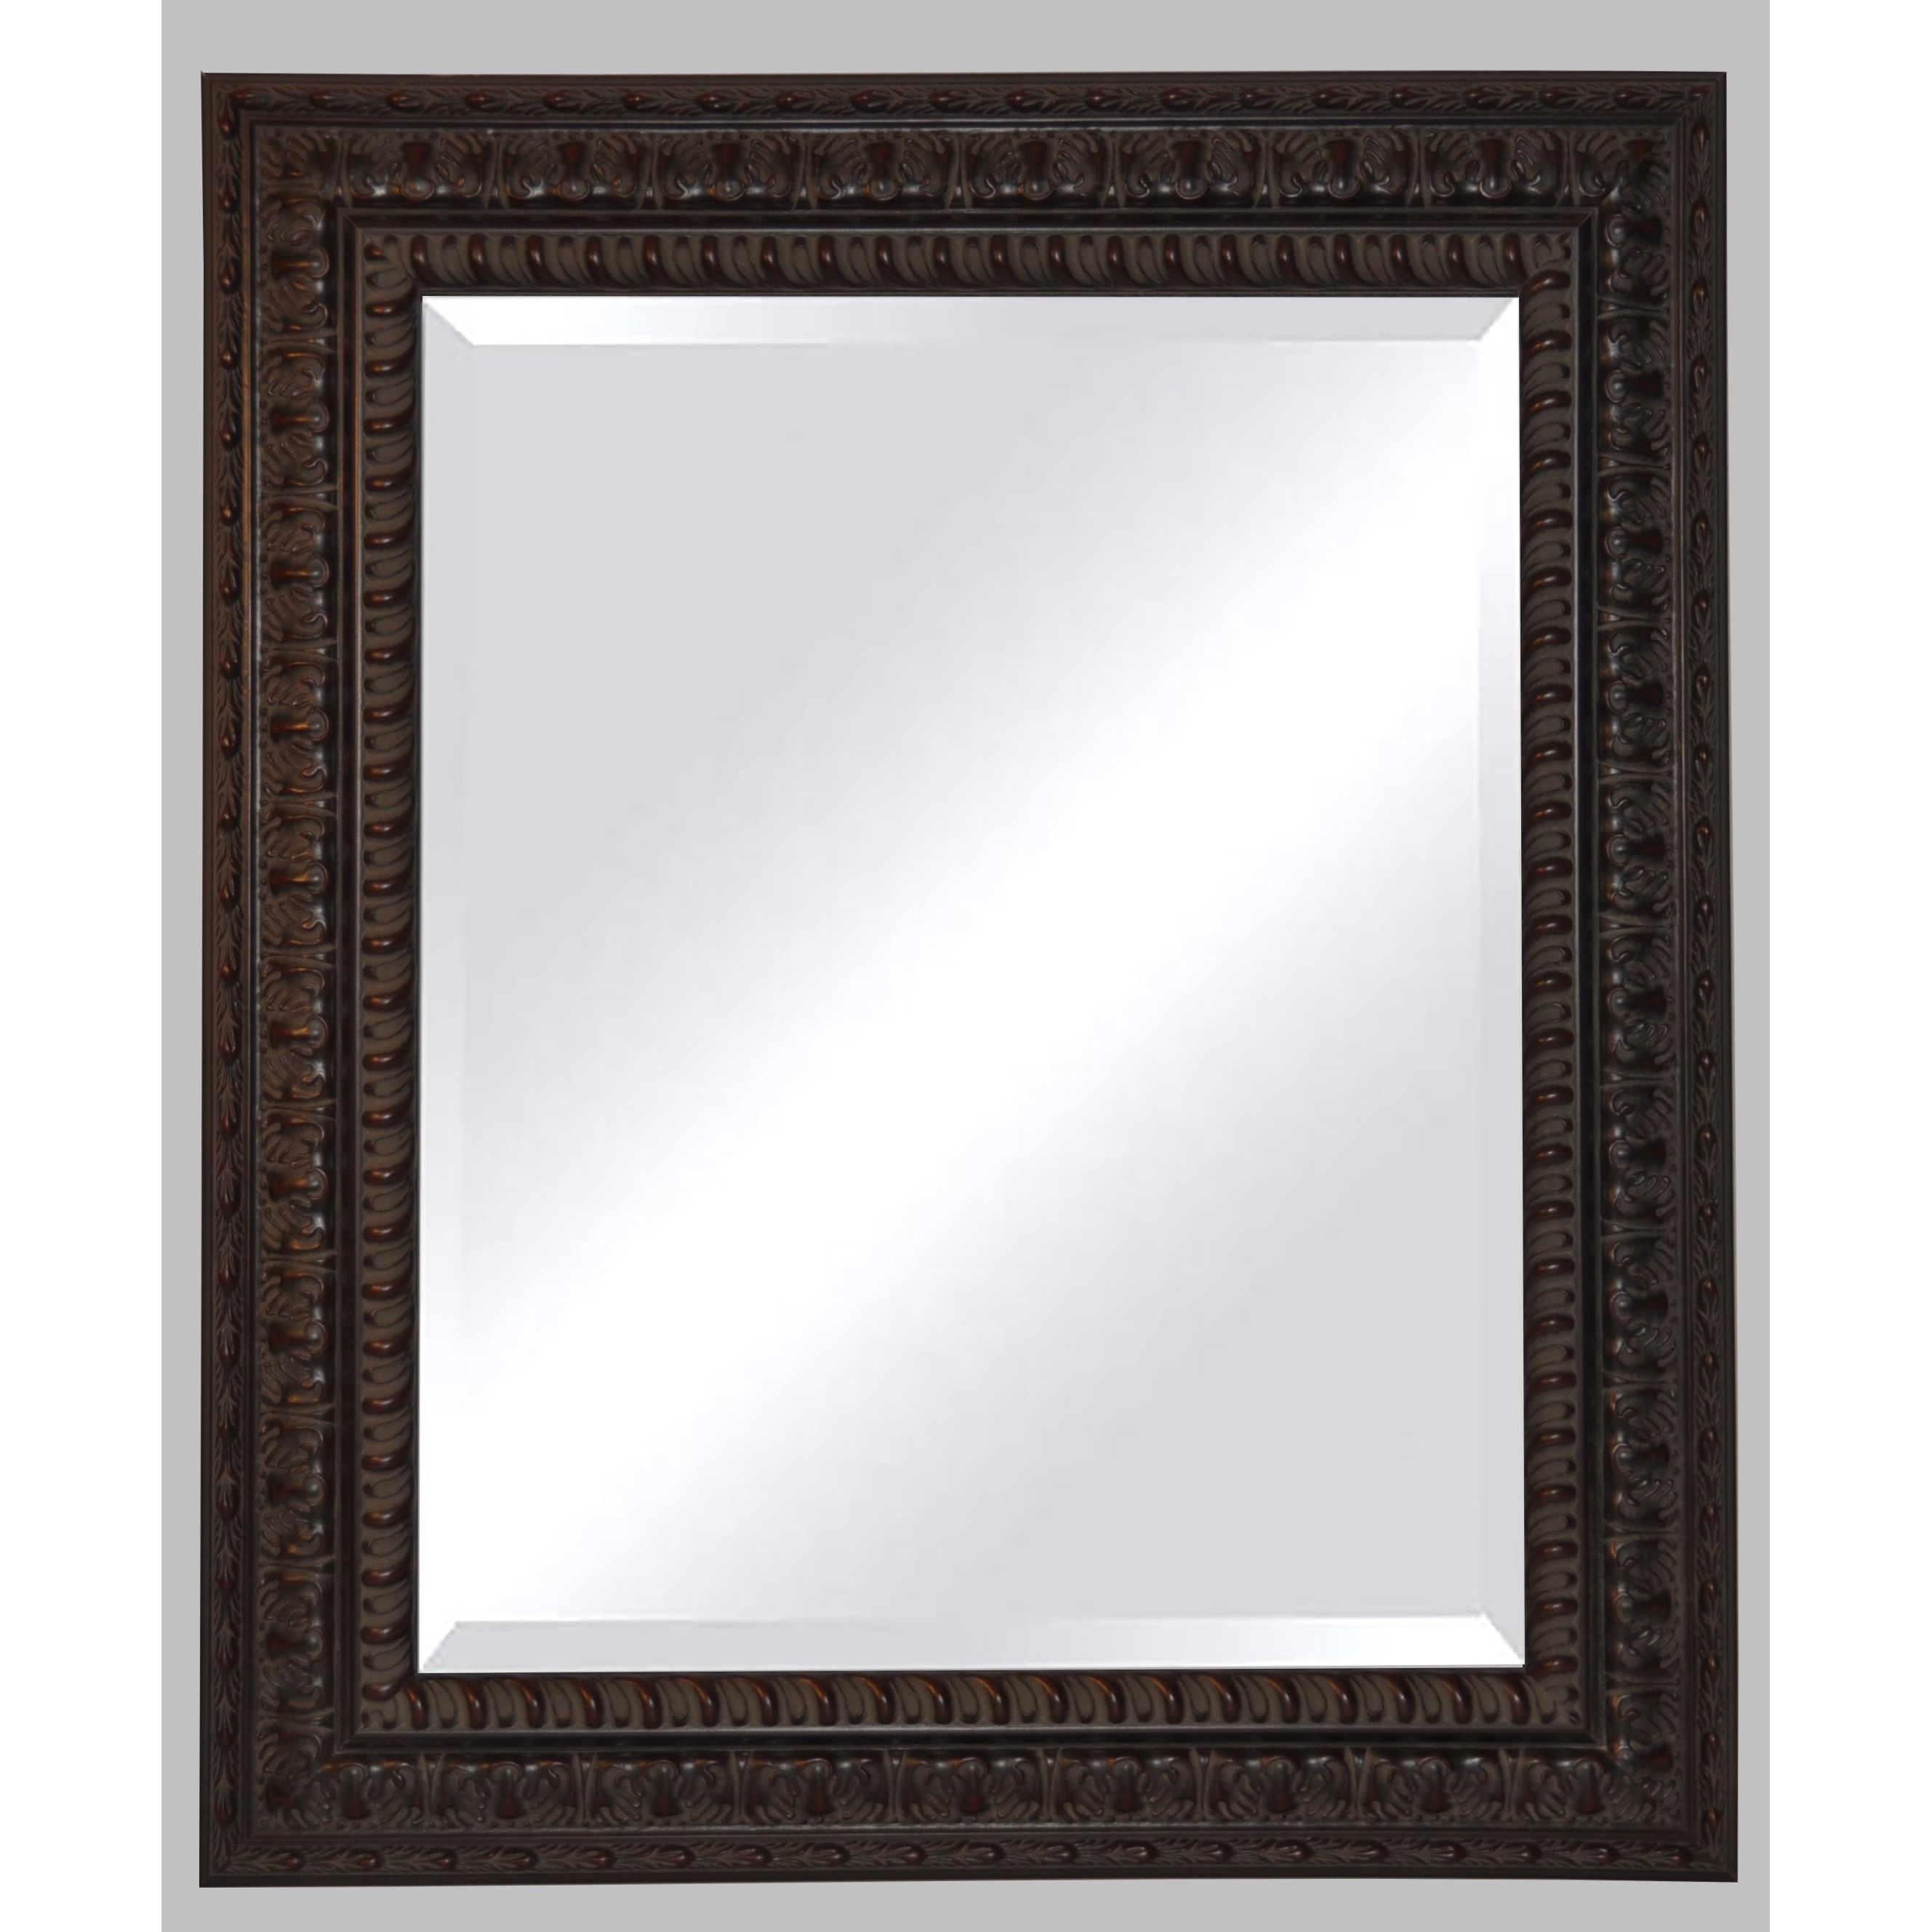 American Made Rayne Embellished Vanity Wall Mirror Rayne Throughout Embellished Mirrors (View 11 of 15)